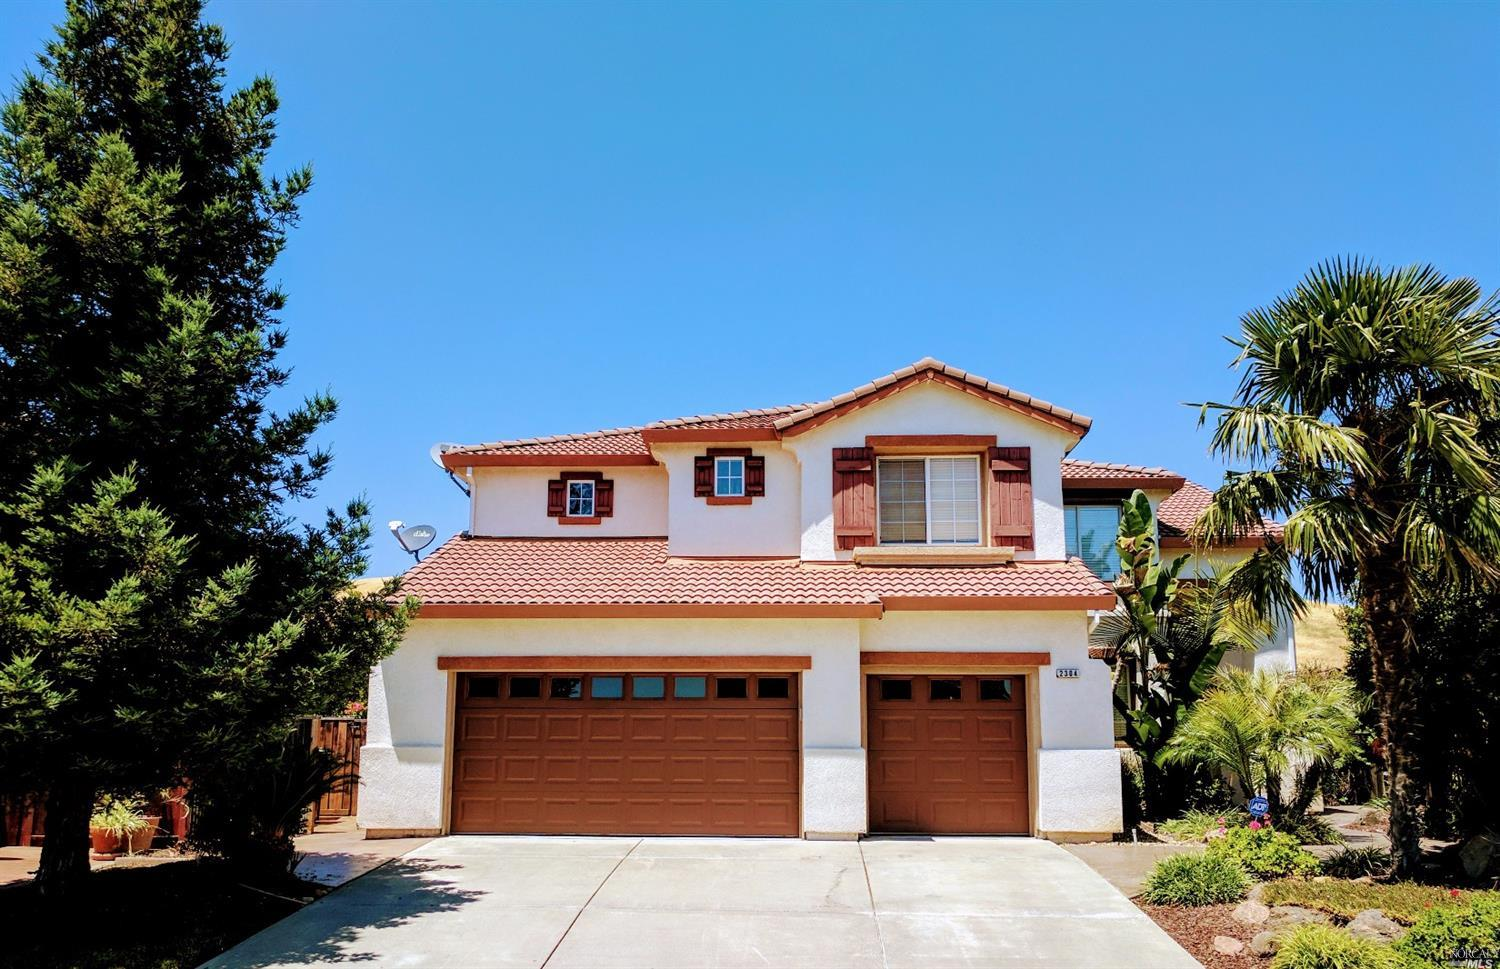 2304 Skyview place Fairfield, CA 94534 - MLS #: 21714171